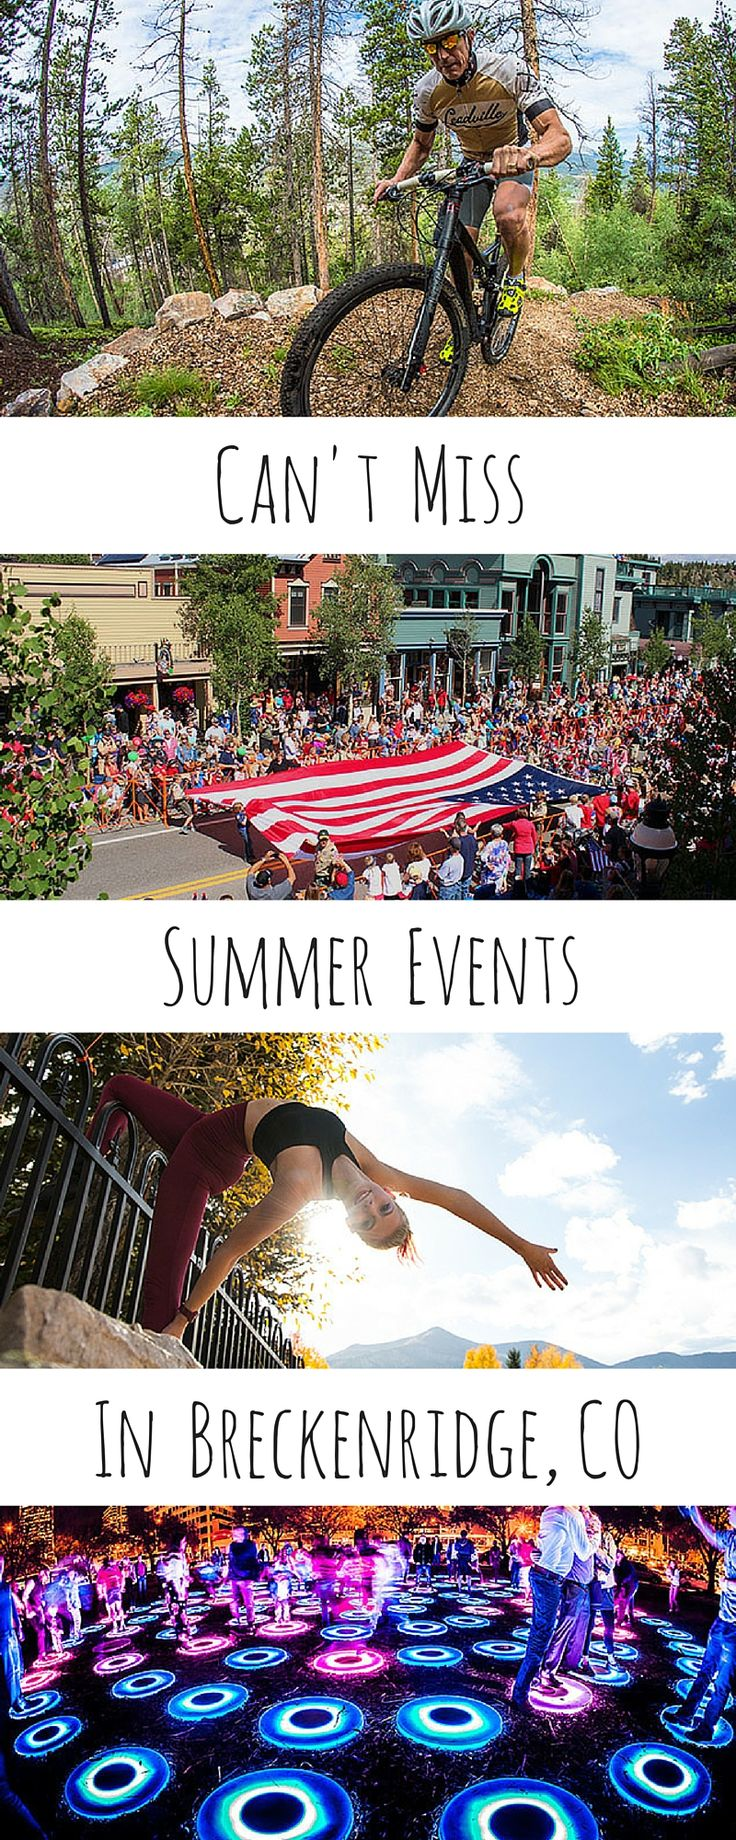 Breckenridge is home to some of the best festivals and events in the state of Colorado. There is so much to do and barley enough summer weekends to fit it all in.